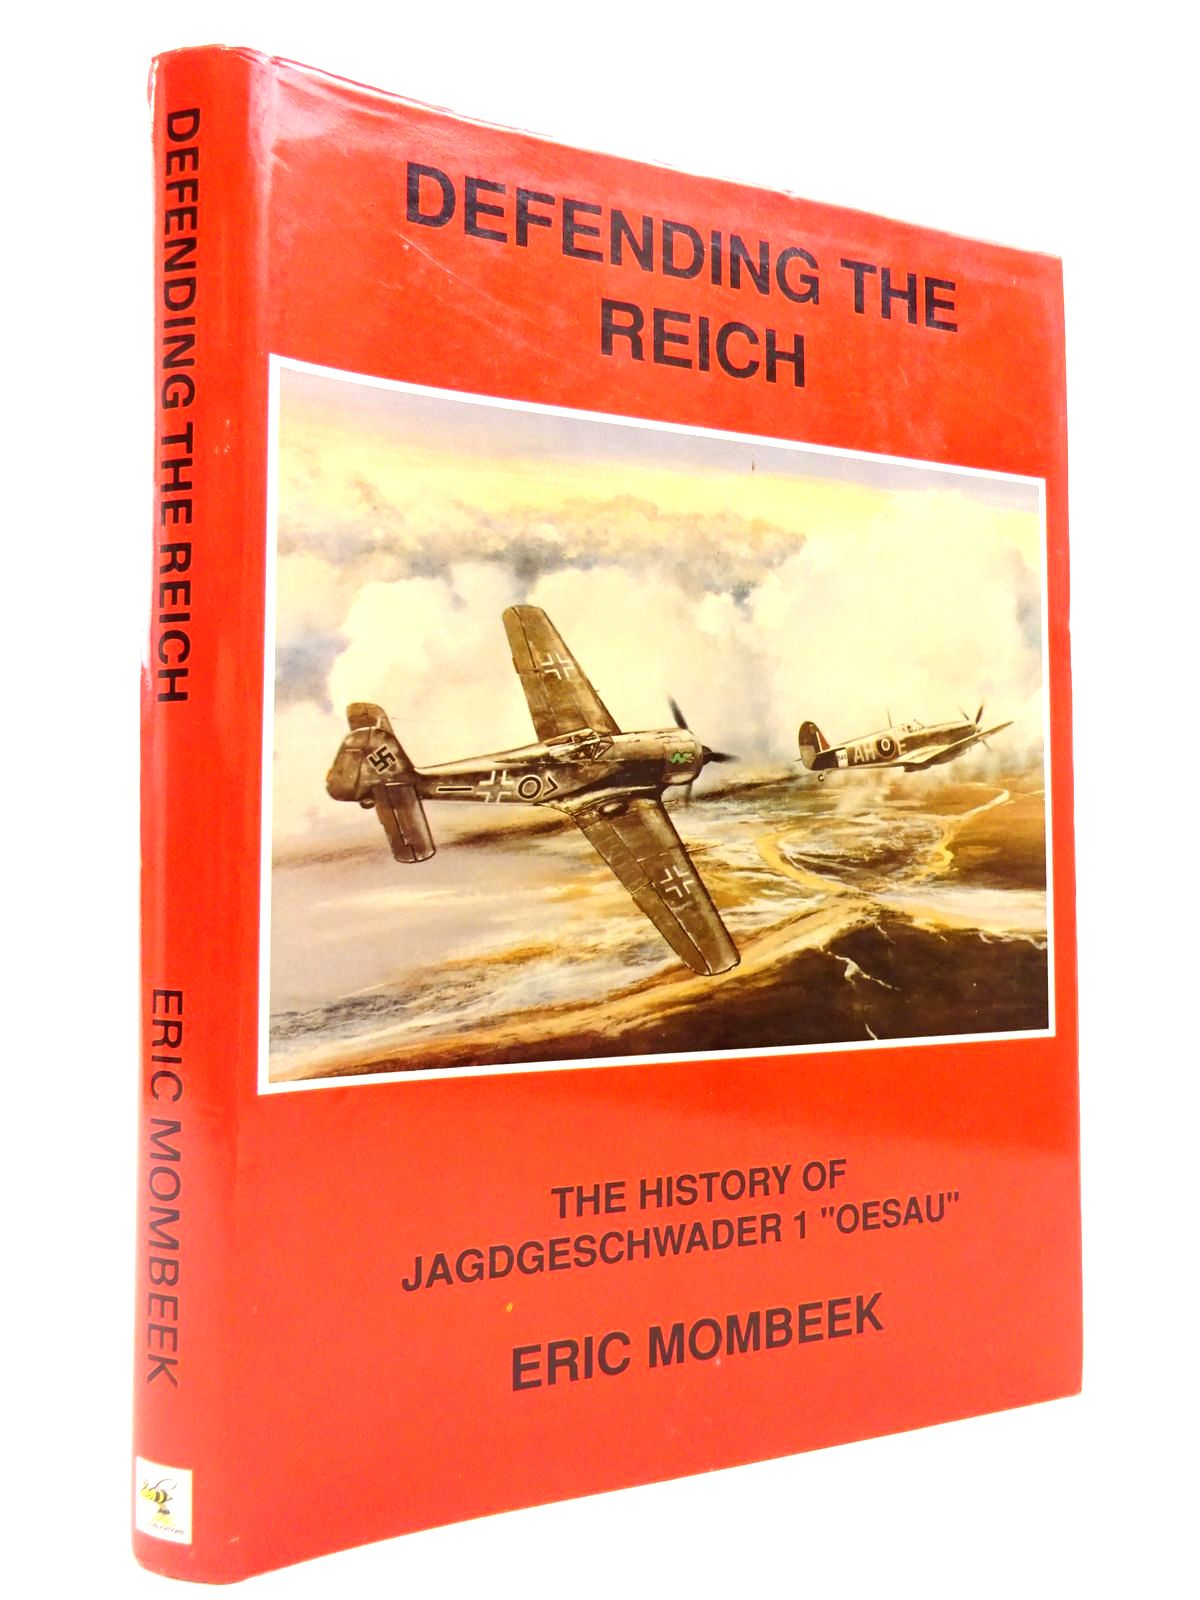 """Photo of DEFENDING THE REICH: THE HISTORY OF JAGDGESCHWADER 1 """"OESAU"""" written by Mombeek, Eric published by JAC Publications (STOCK CODE: 1815836)  for sale by Stella & Rose's Books"""